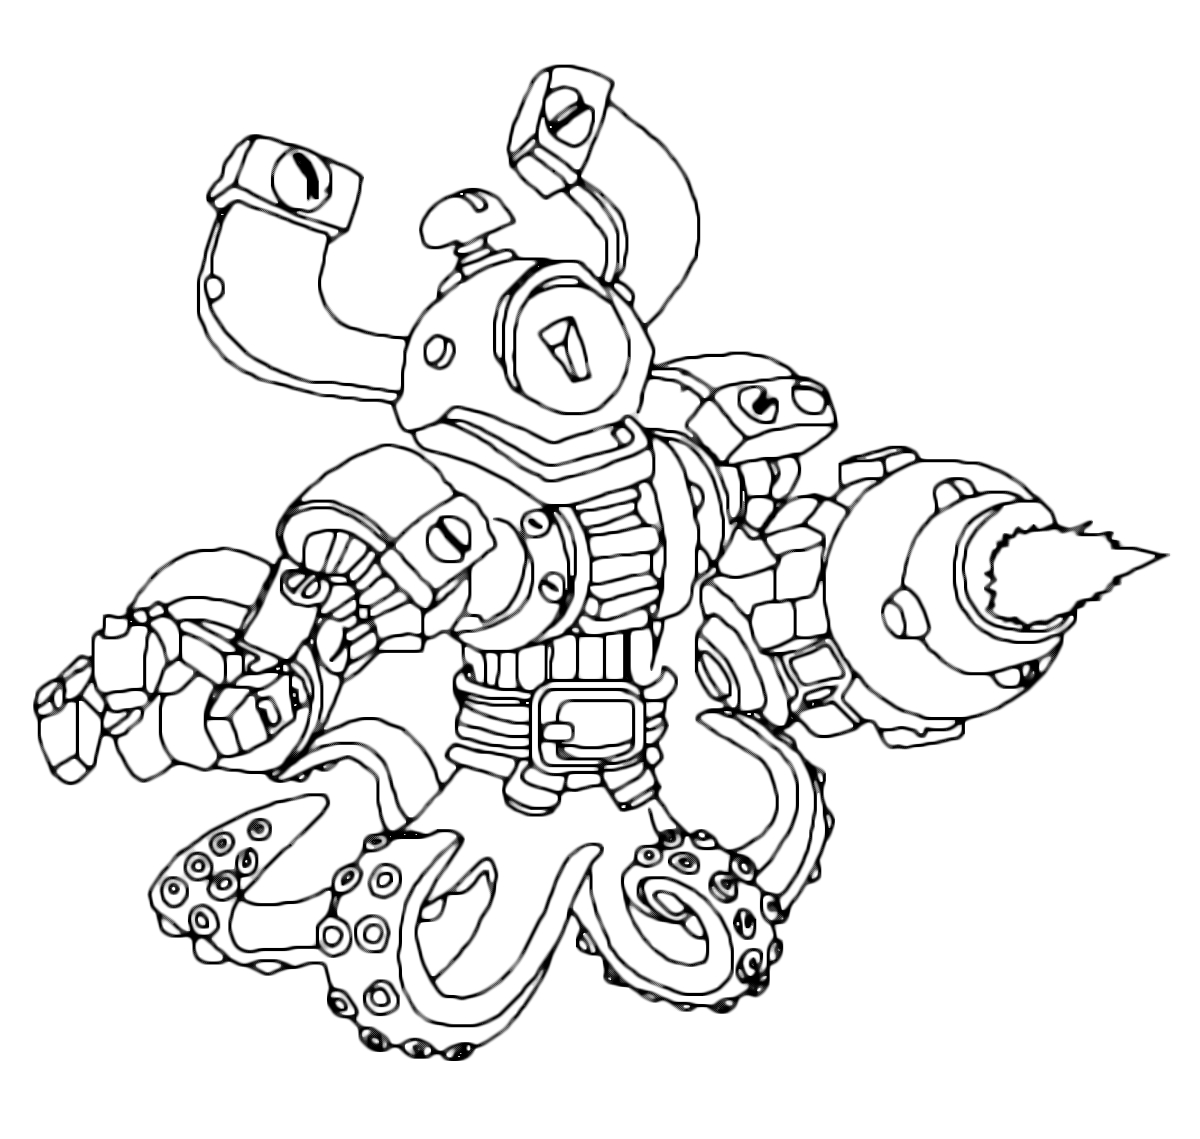 Skylanders Imaginators Coloring Pages - Skylanders Swap force Magna Buckler Con Le Gambe Da Piovra